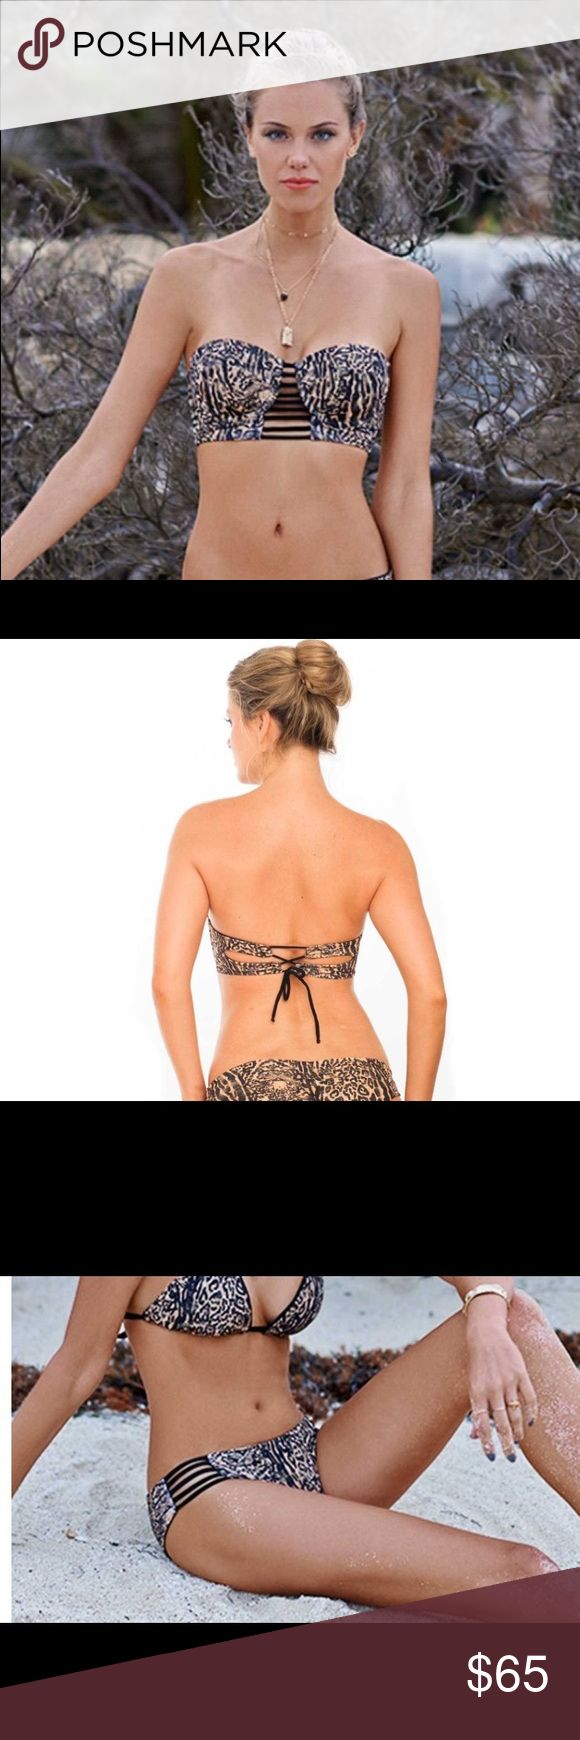 Malai leopard underwire top & strappy bottom Bengal Leopard Underwire Bikini Top & Strappy Reversible Bottom by Malai Swimwear.  Top: Bandeau top with underwire support. Strappy detailing at center bust. Removable straps. Lightly padded (not removable). Ties in the back.  Bottom: Low rise bottom. Strappy sides. Offers moderate backside coverage. Bottom is reversible to a solid black. Made in Colombia. 81% nylon, 19% spandex Malai Swim Swim Bikinis